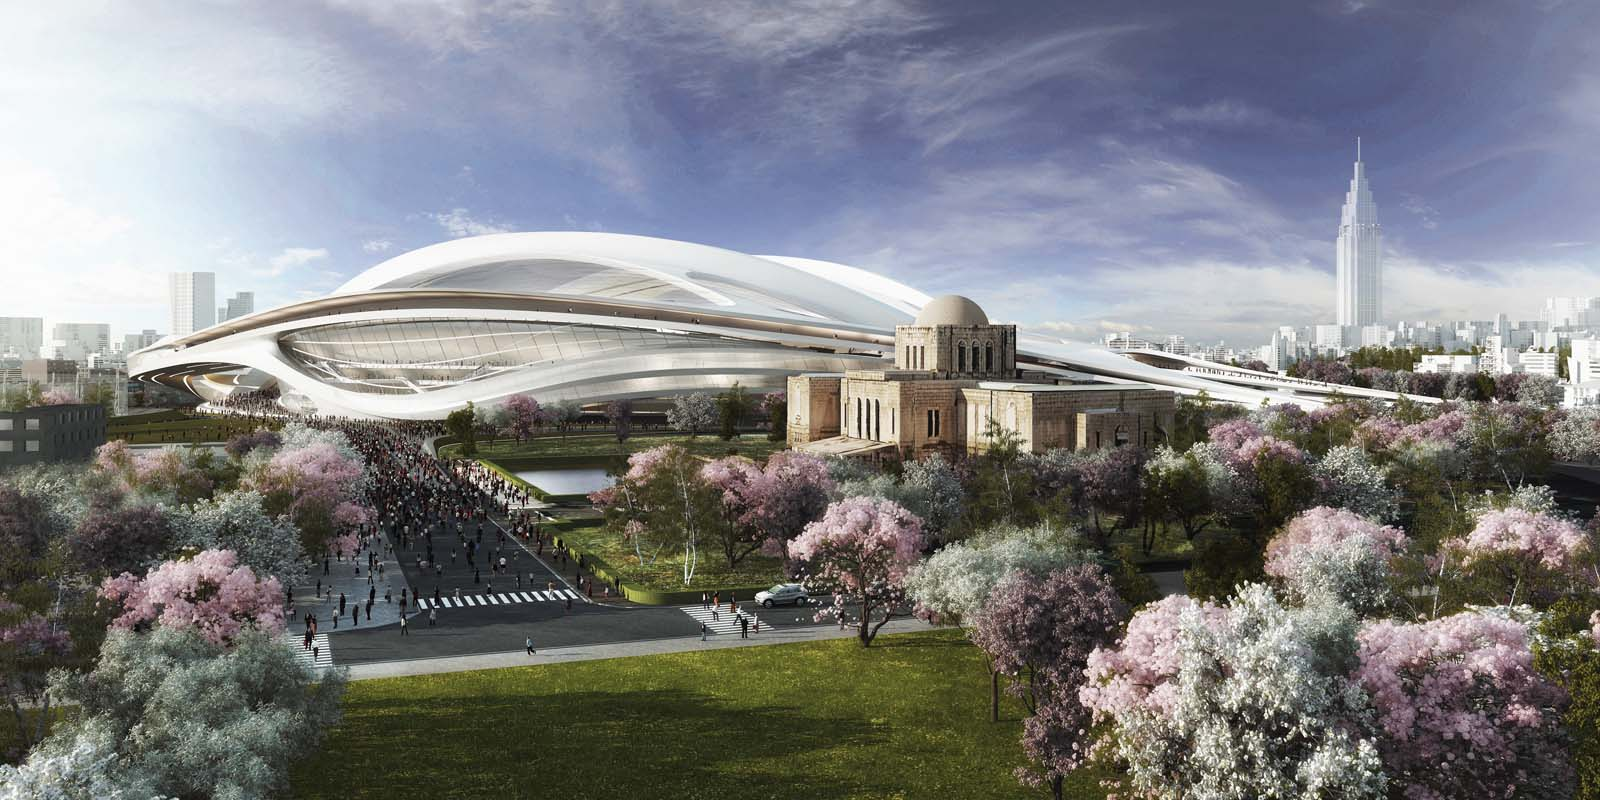 http://www.architecturelist.com/wp-content/uploads/2012/11/ZHA_New-National-Stadium-7.jpg